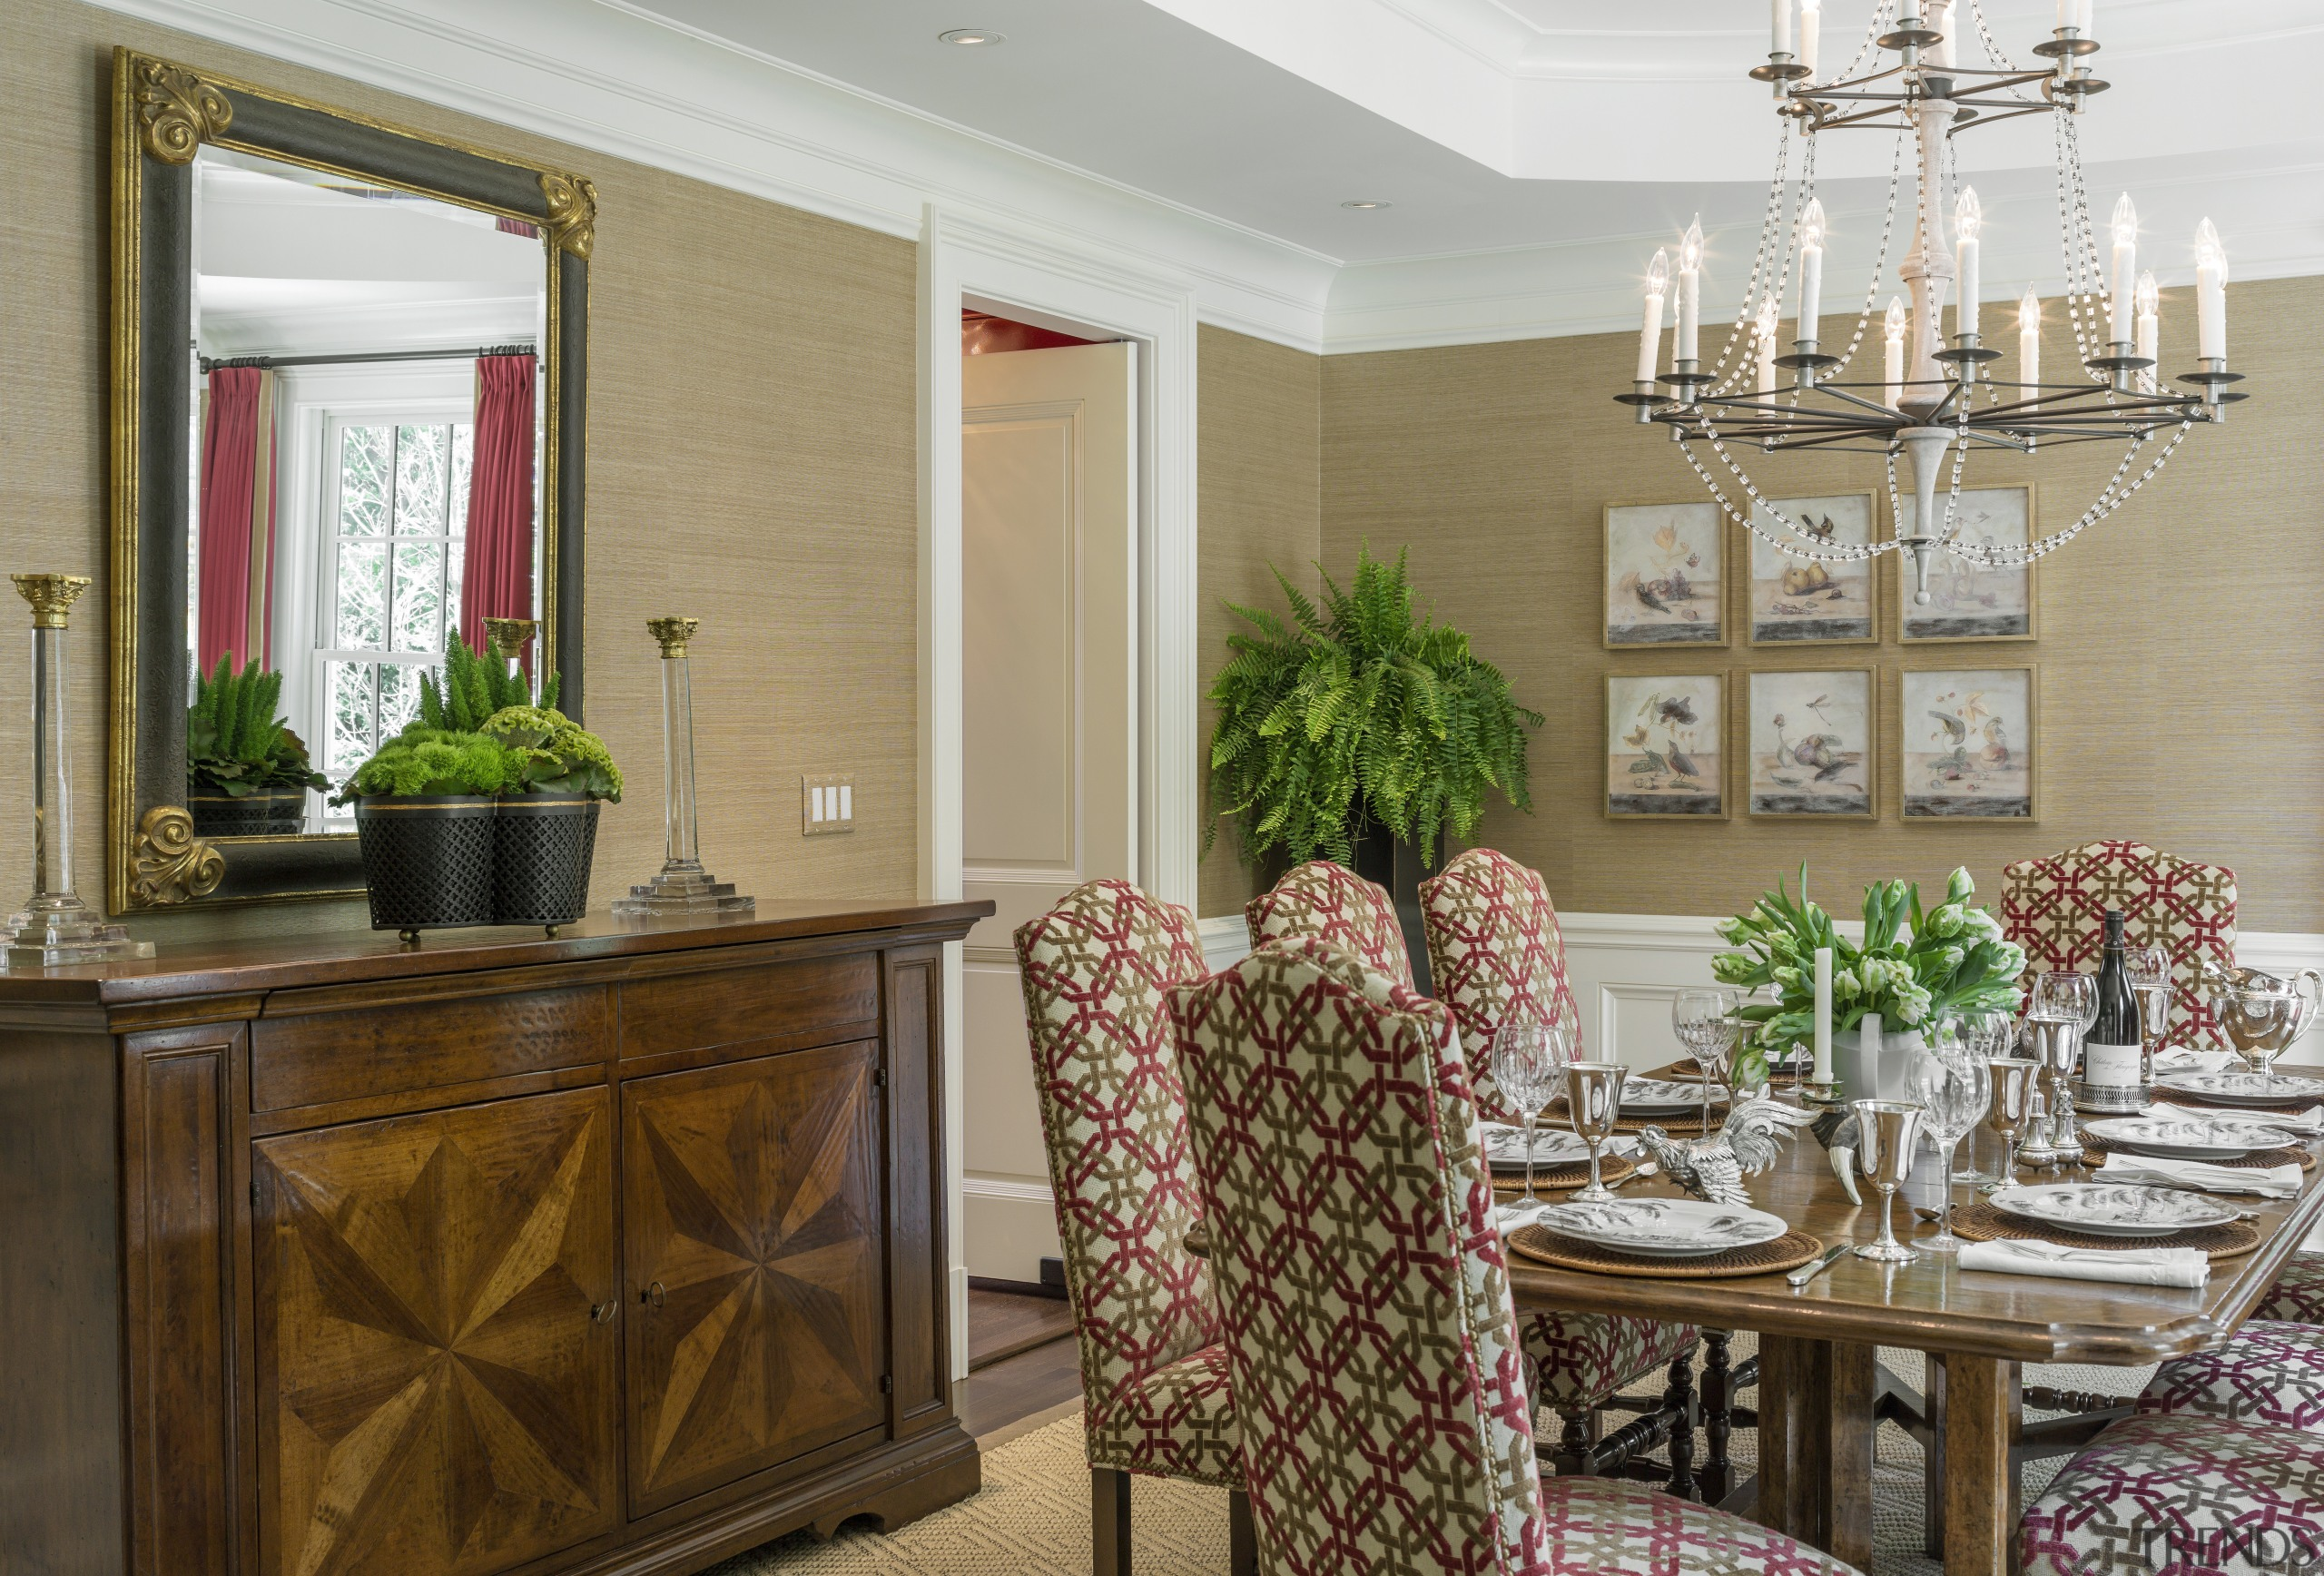 The formal dining room in this New England dining room, home, interior design, living room, room, window, brown, gray